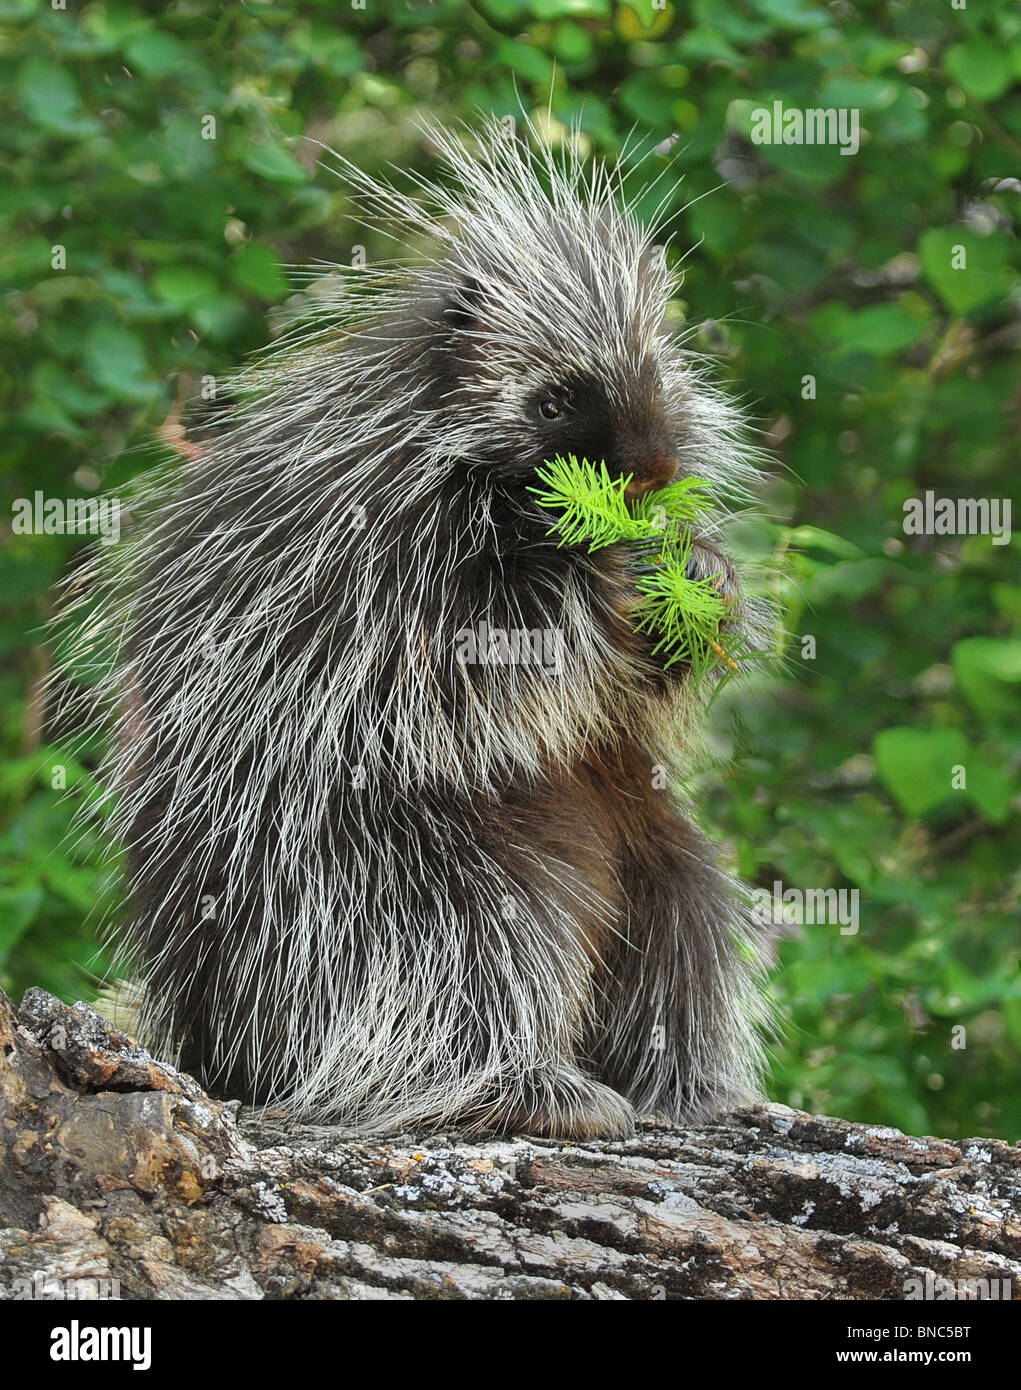 Porcupine sitting on a log eatting Stock Photo